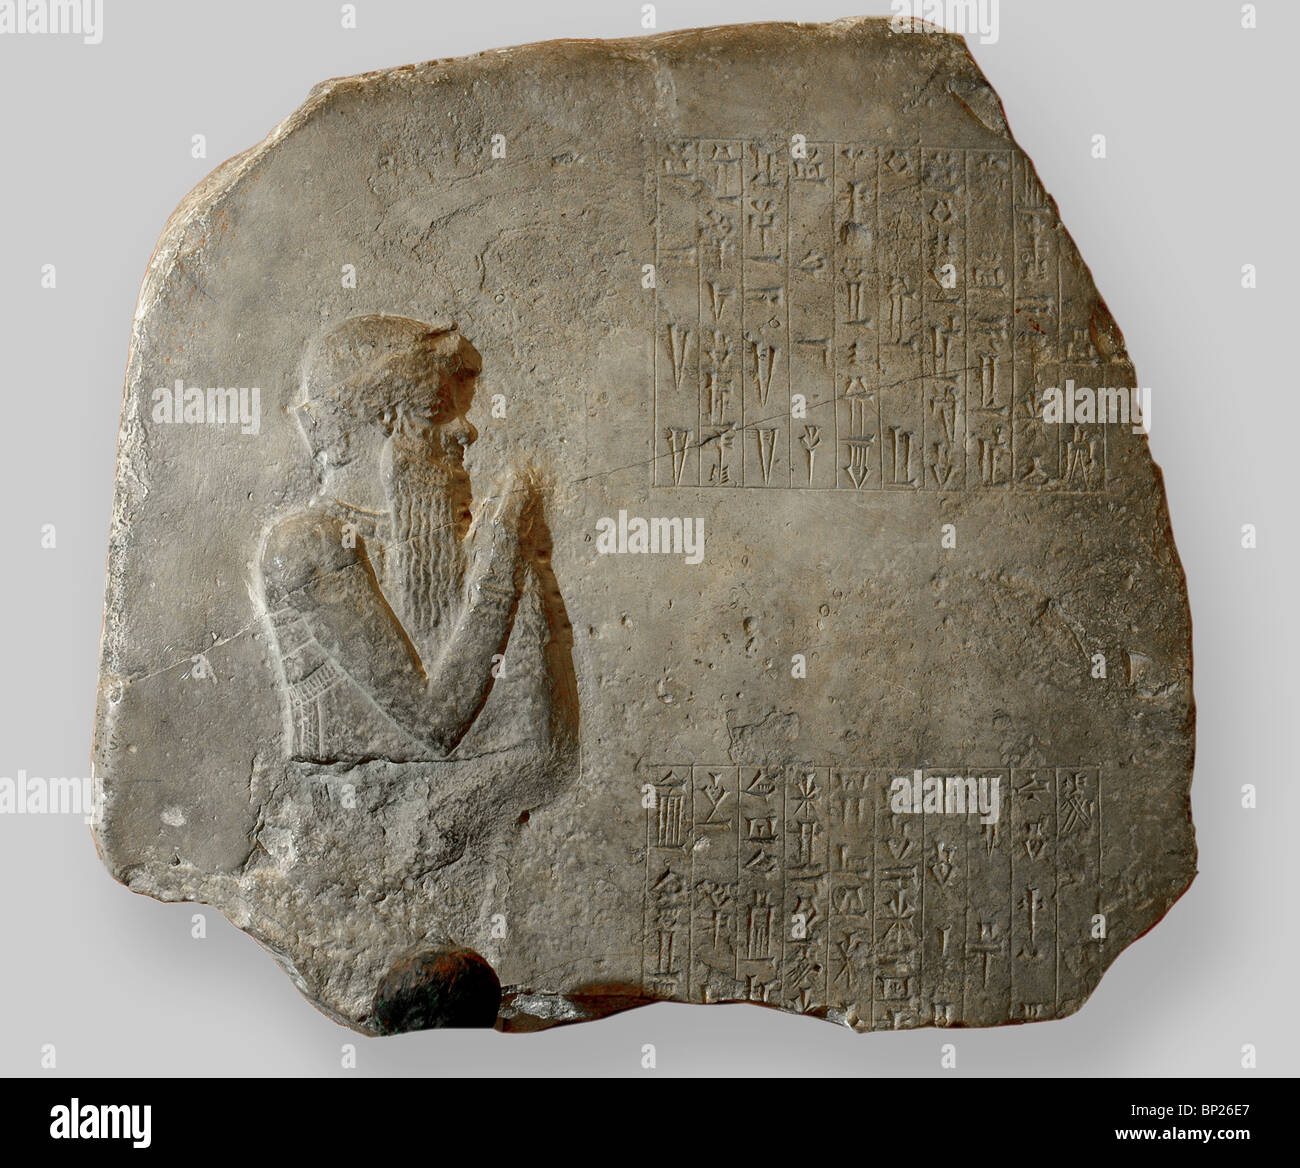 1032. STELAE OF KING HAMMURABI OF BABYLON (1792 - 1750 B.C.). THE CUNIFIRM TEXT IS A PRAYER FOR THE WELLBEING OF Stock Photo